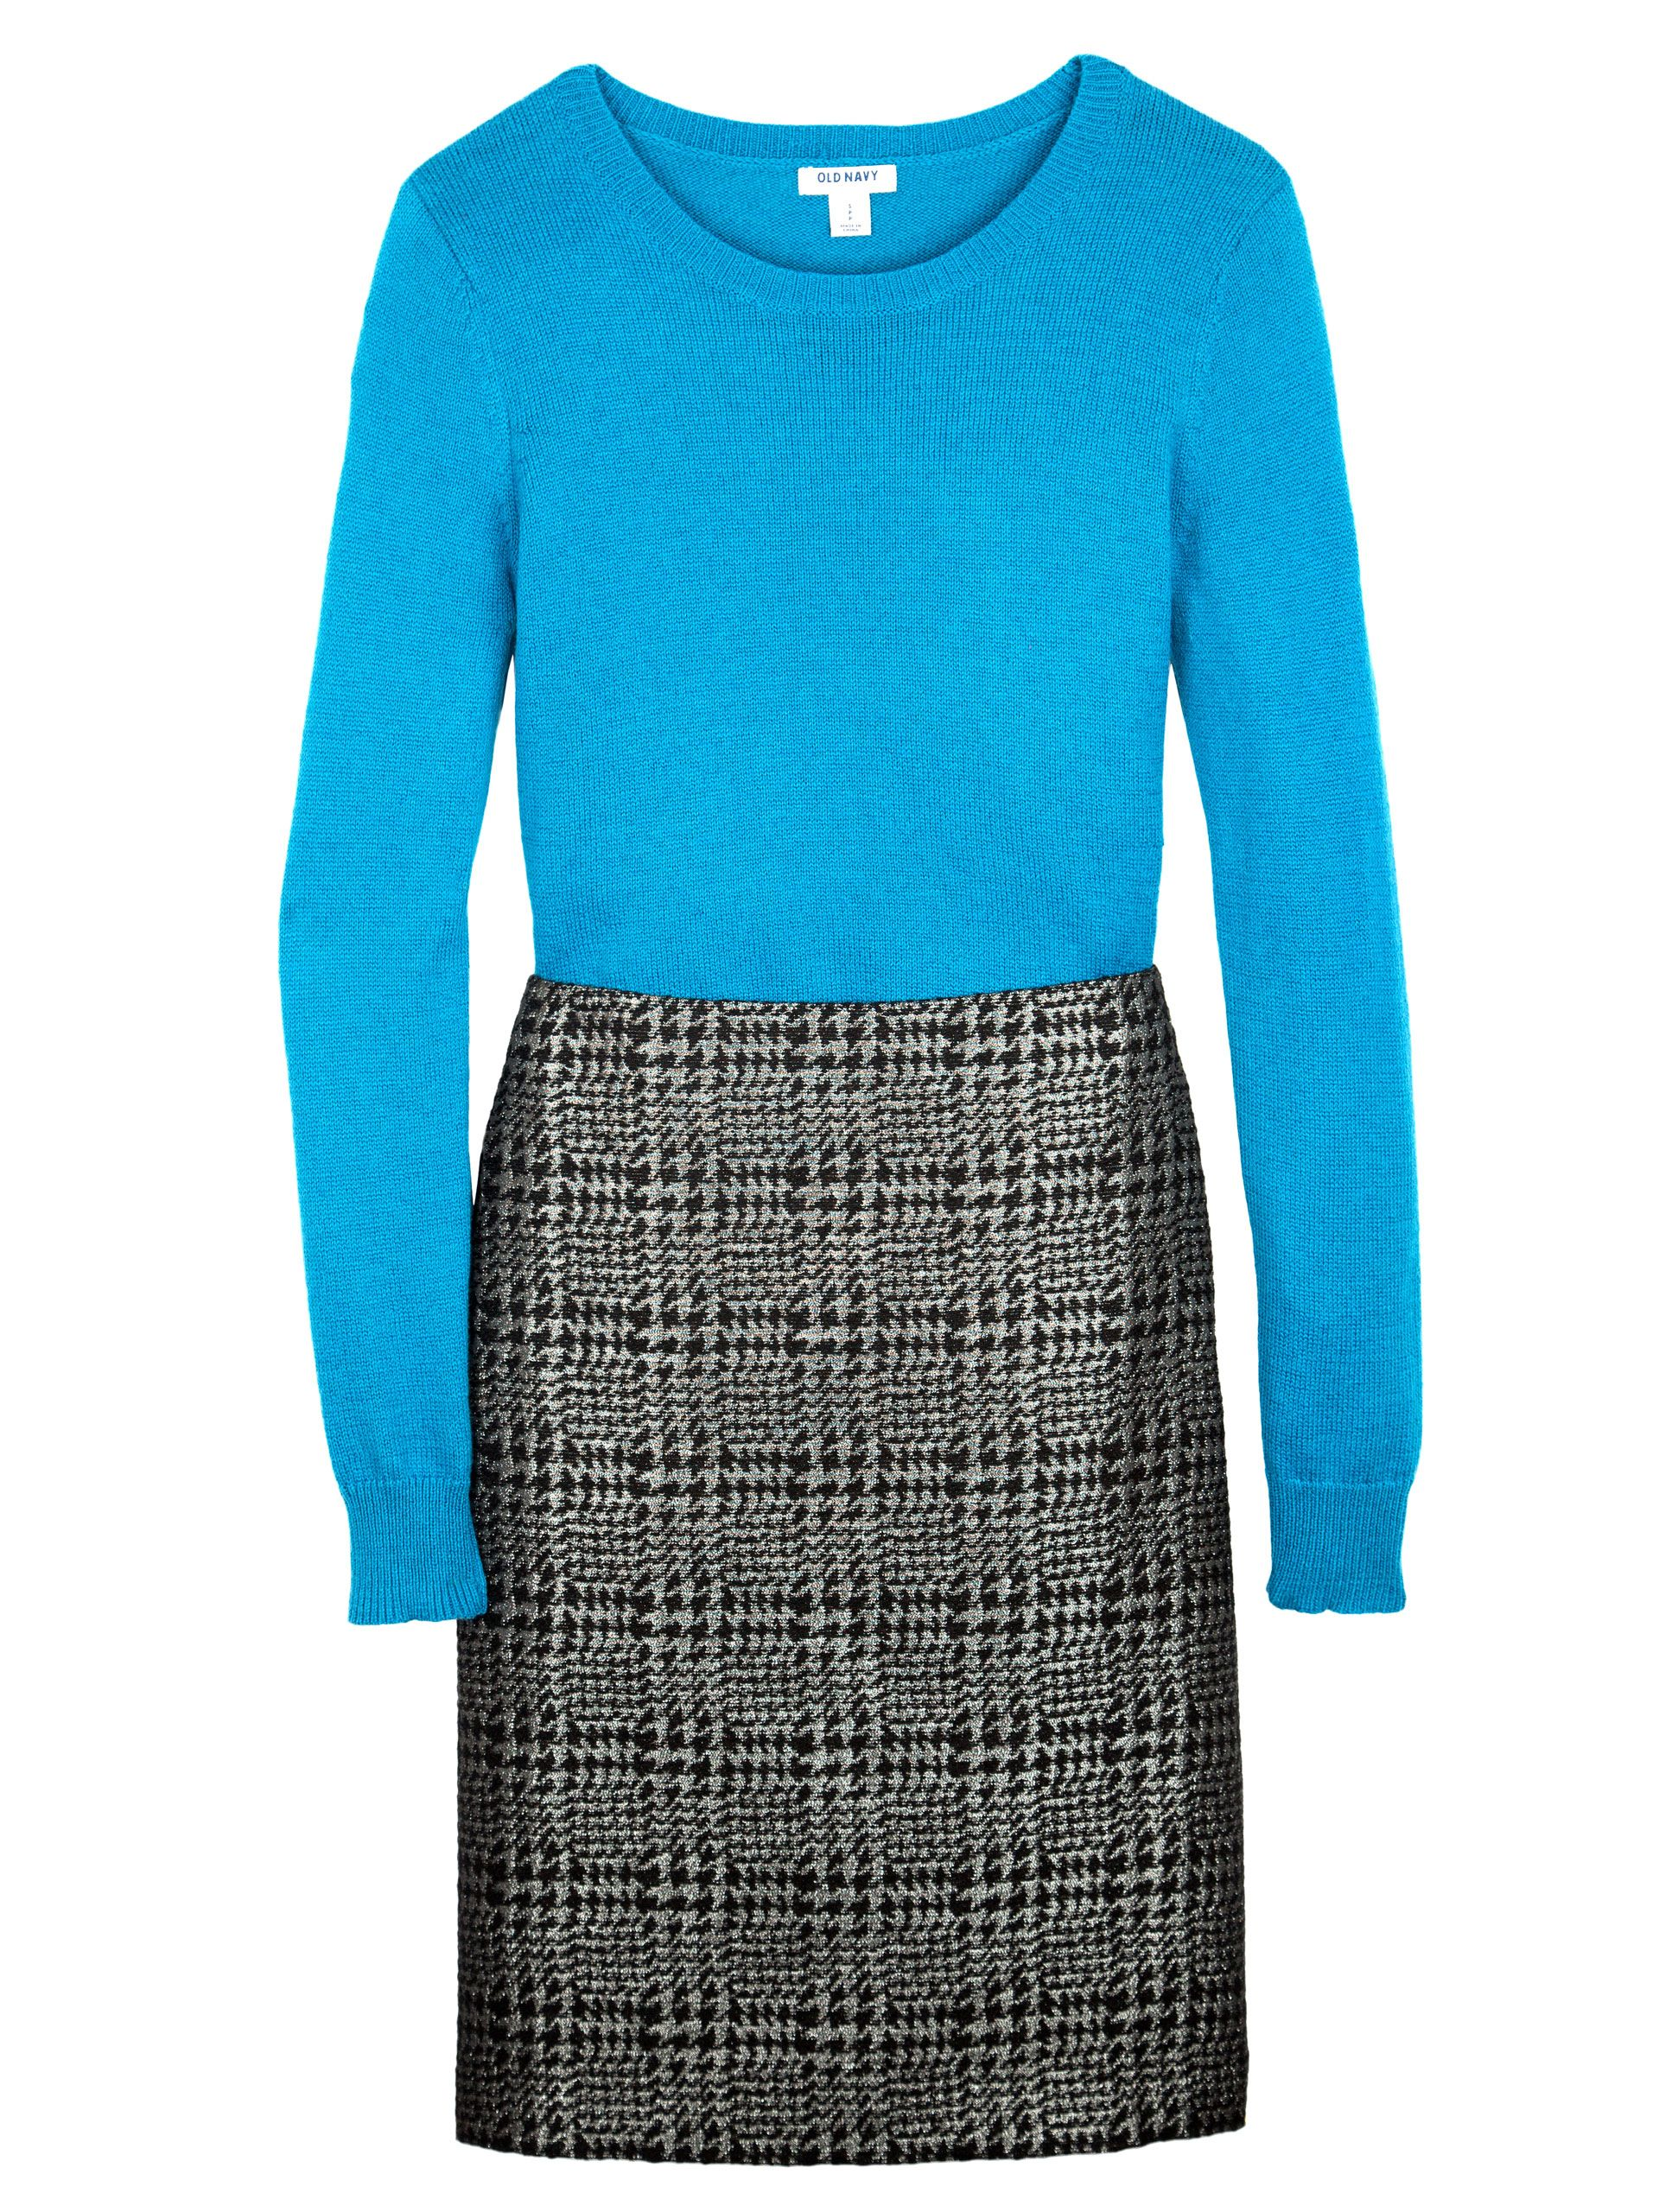 7 Days of Perfect Skirts-Sweater Combos for Cool Days advise